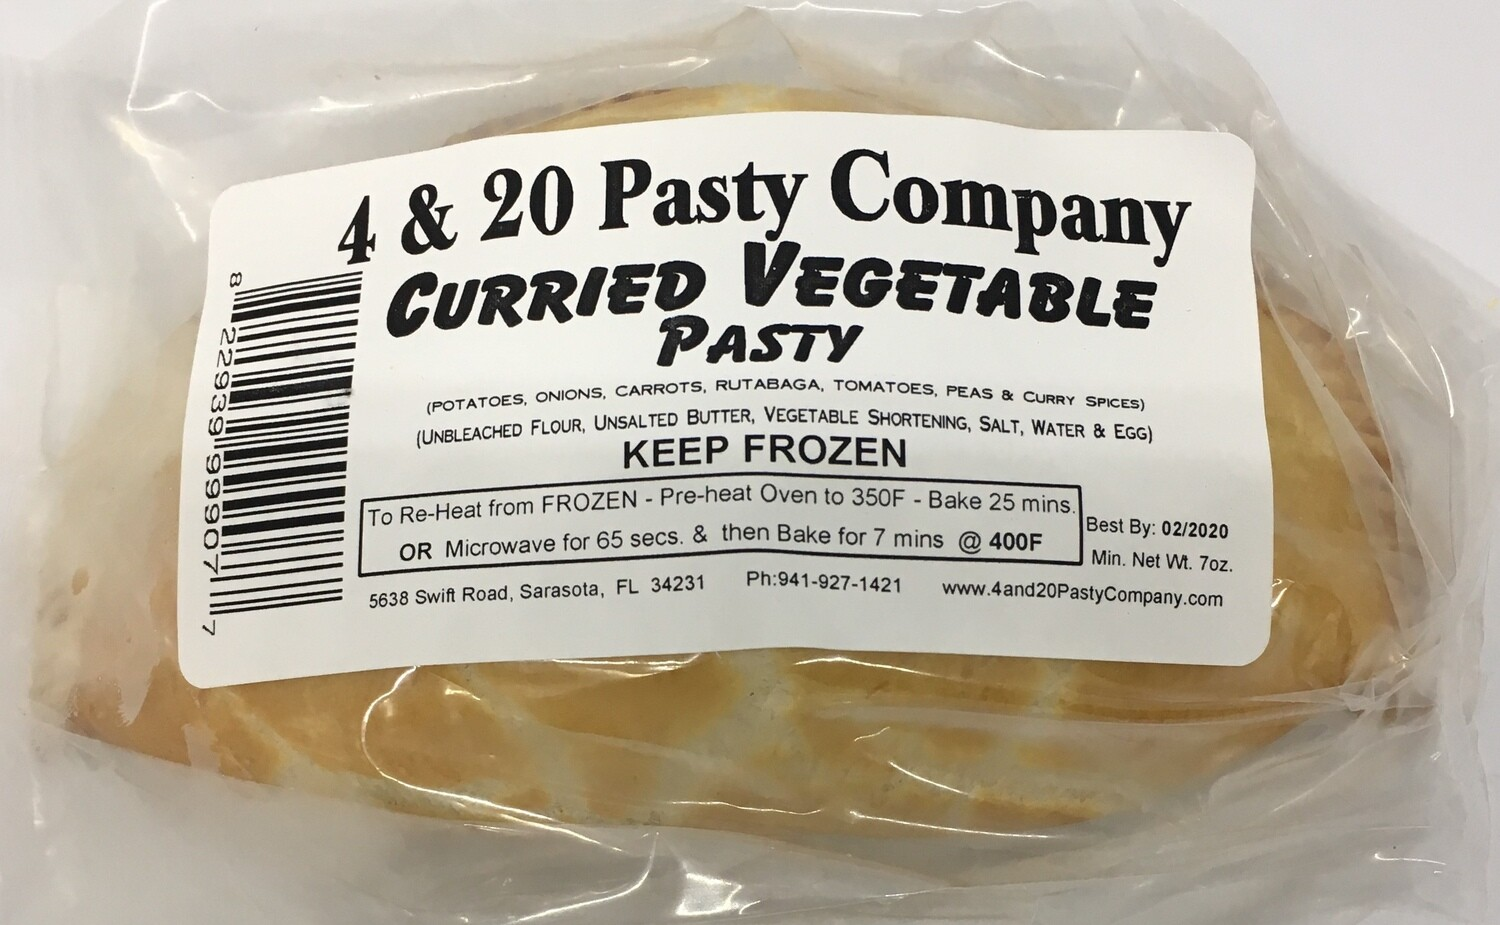 4 & 20 Curried Veg Pasty 7oz